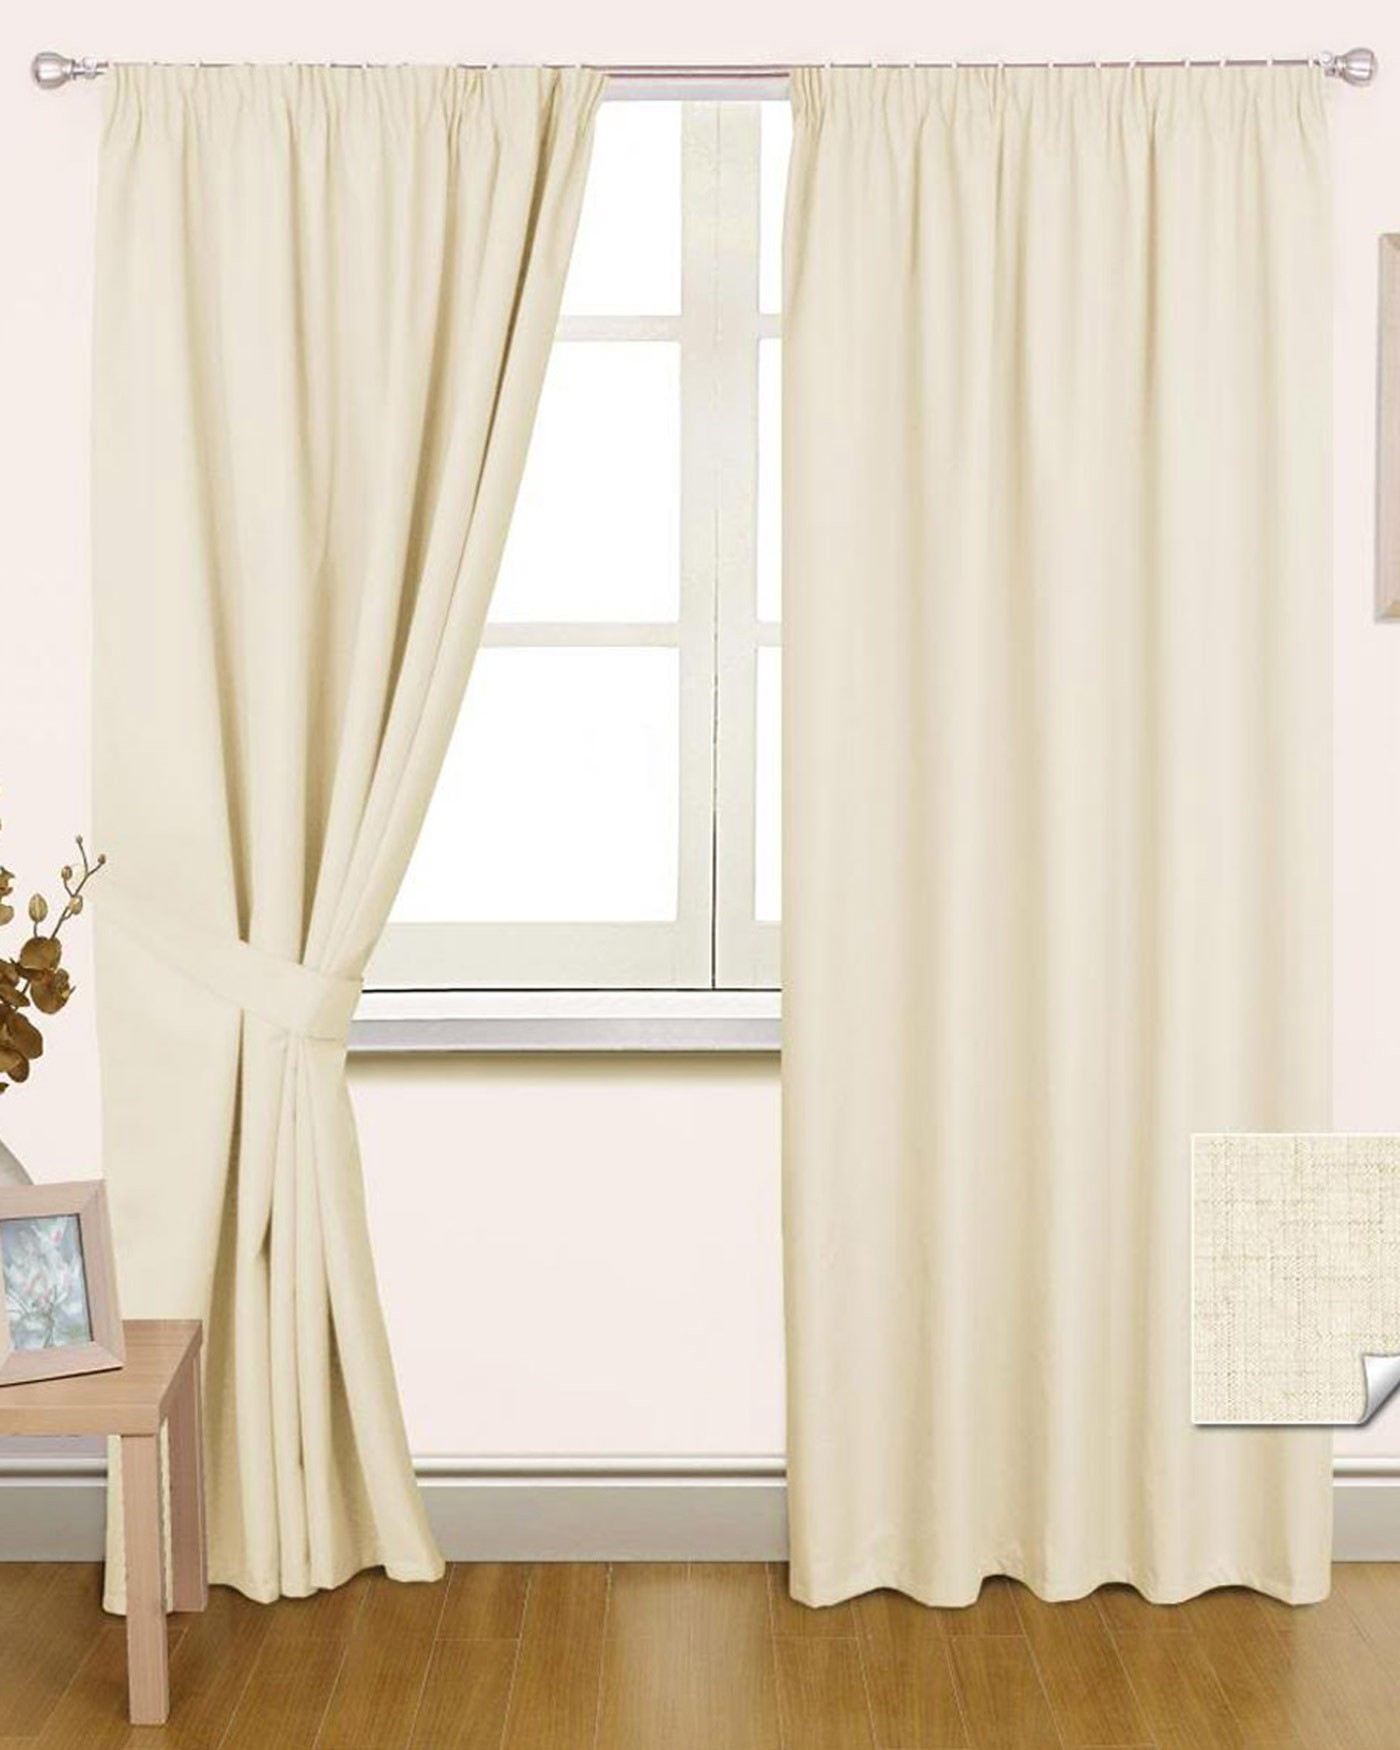 Decor Lovely Blackout Curtain Liner For Home Decoration